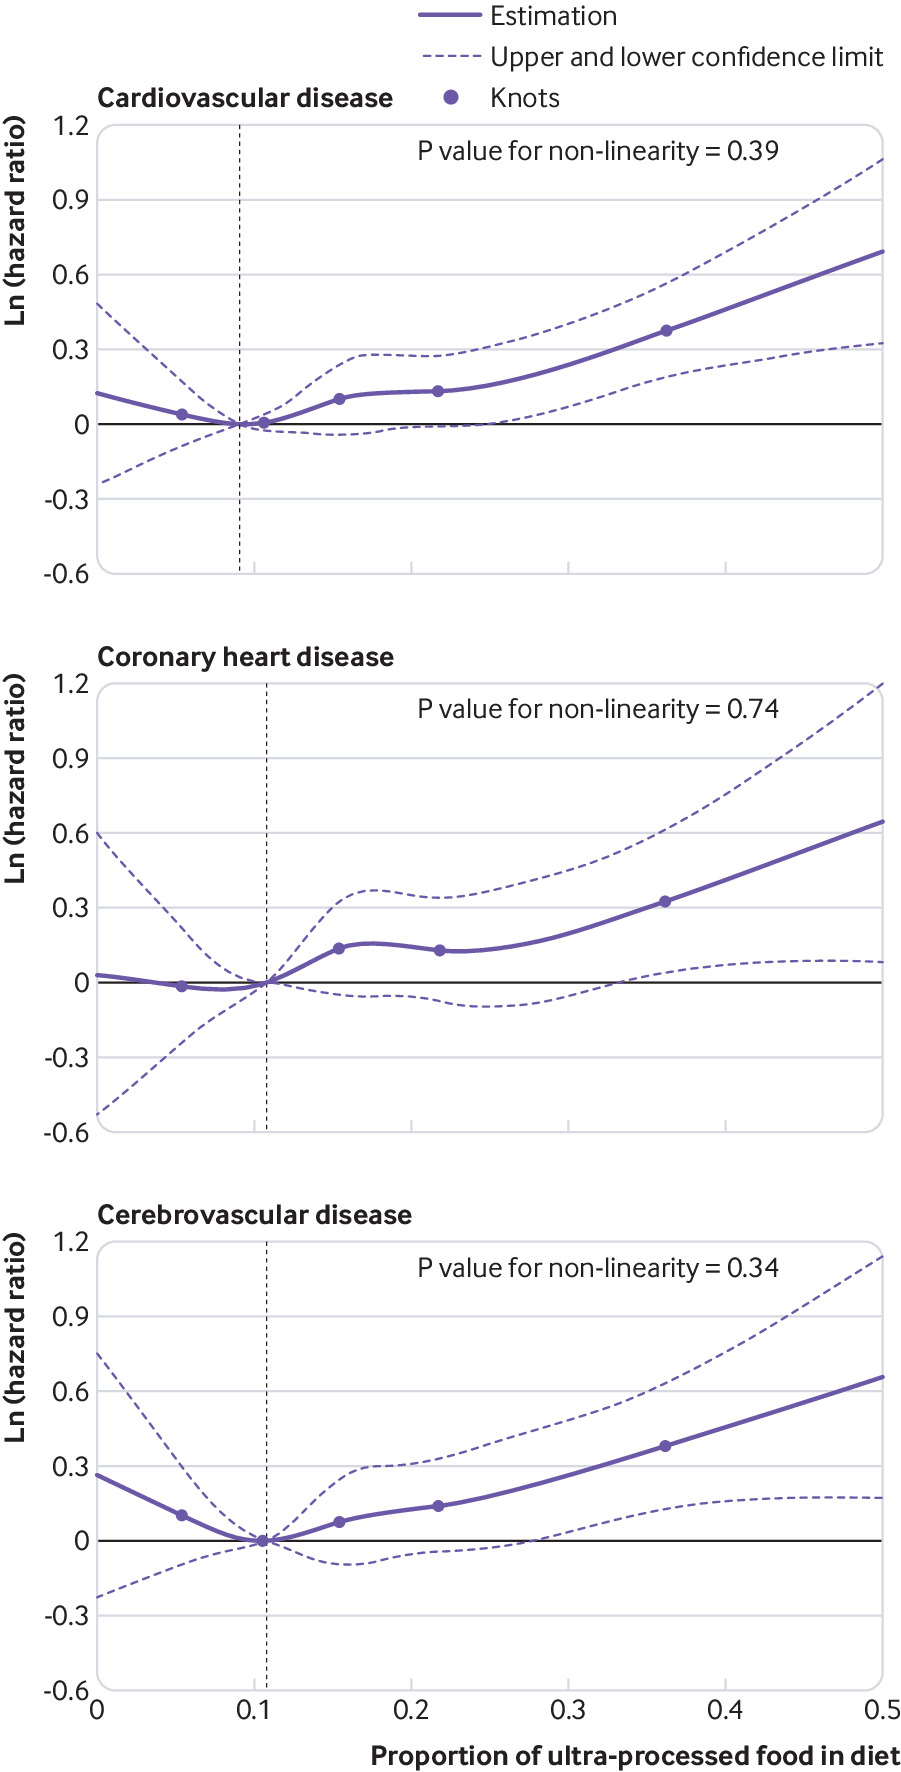 Ultra-processed food intake and risk of cardiovascular disease